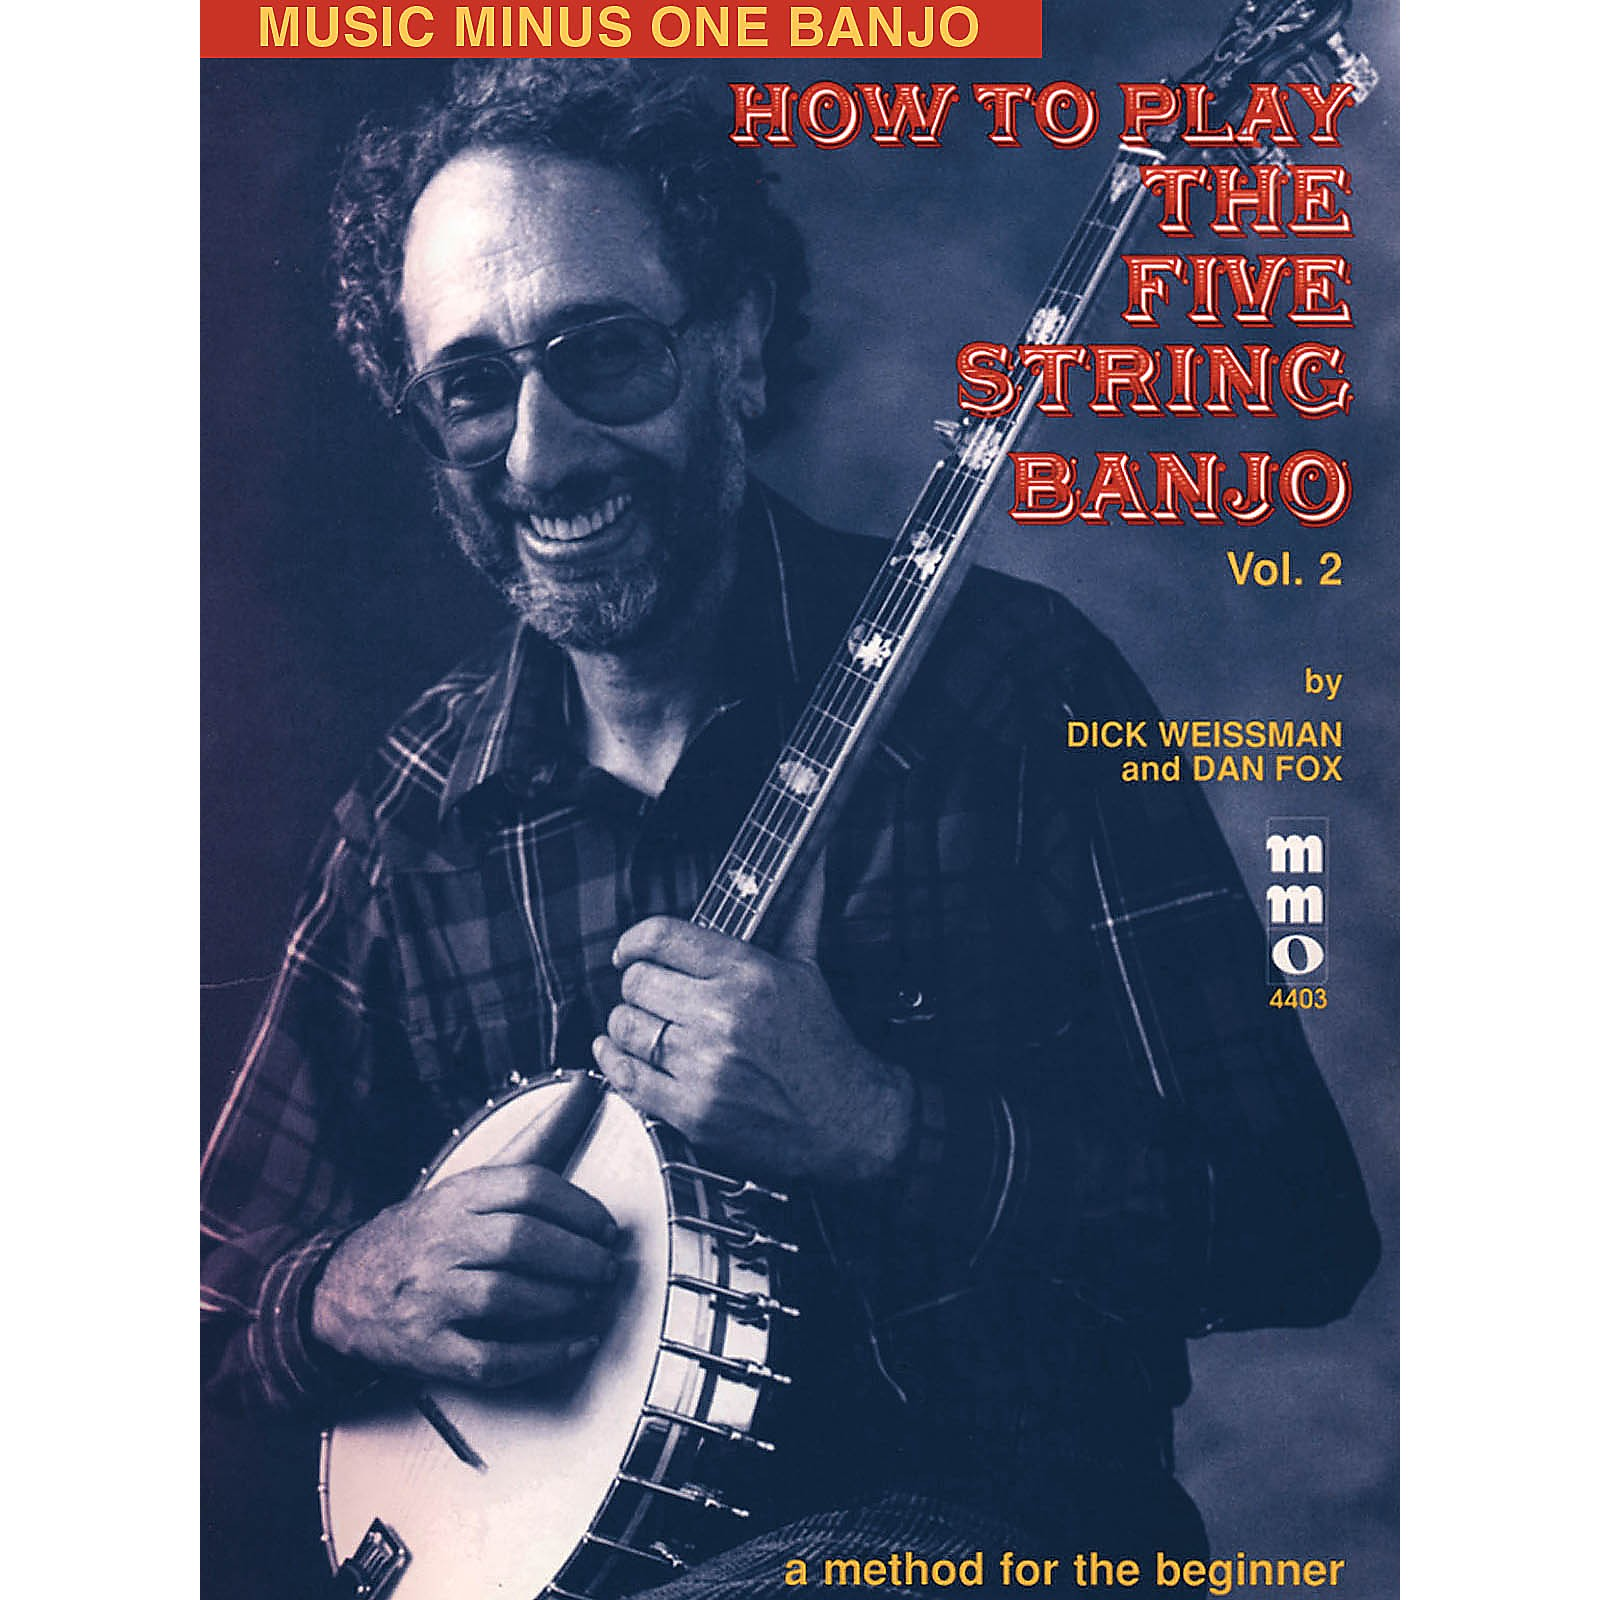 Music Minus One How to Play the Five String Banjo (Vol. 2) Music Minus One Series Softcover with CD by Dick Weissman